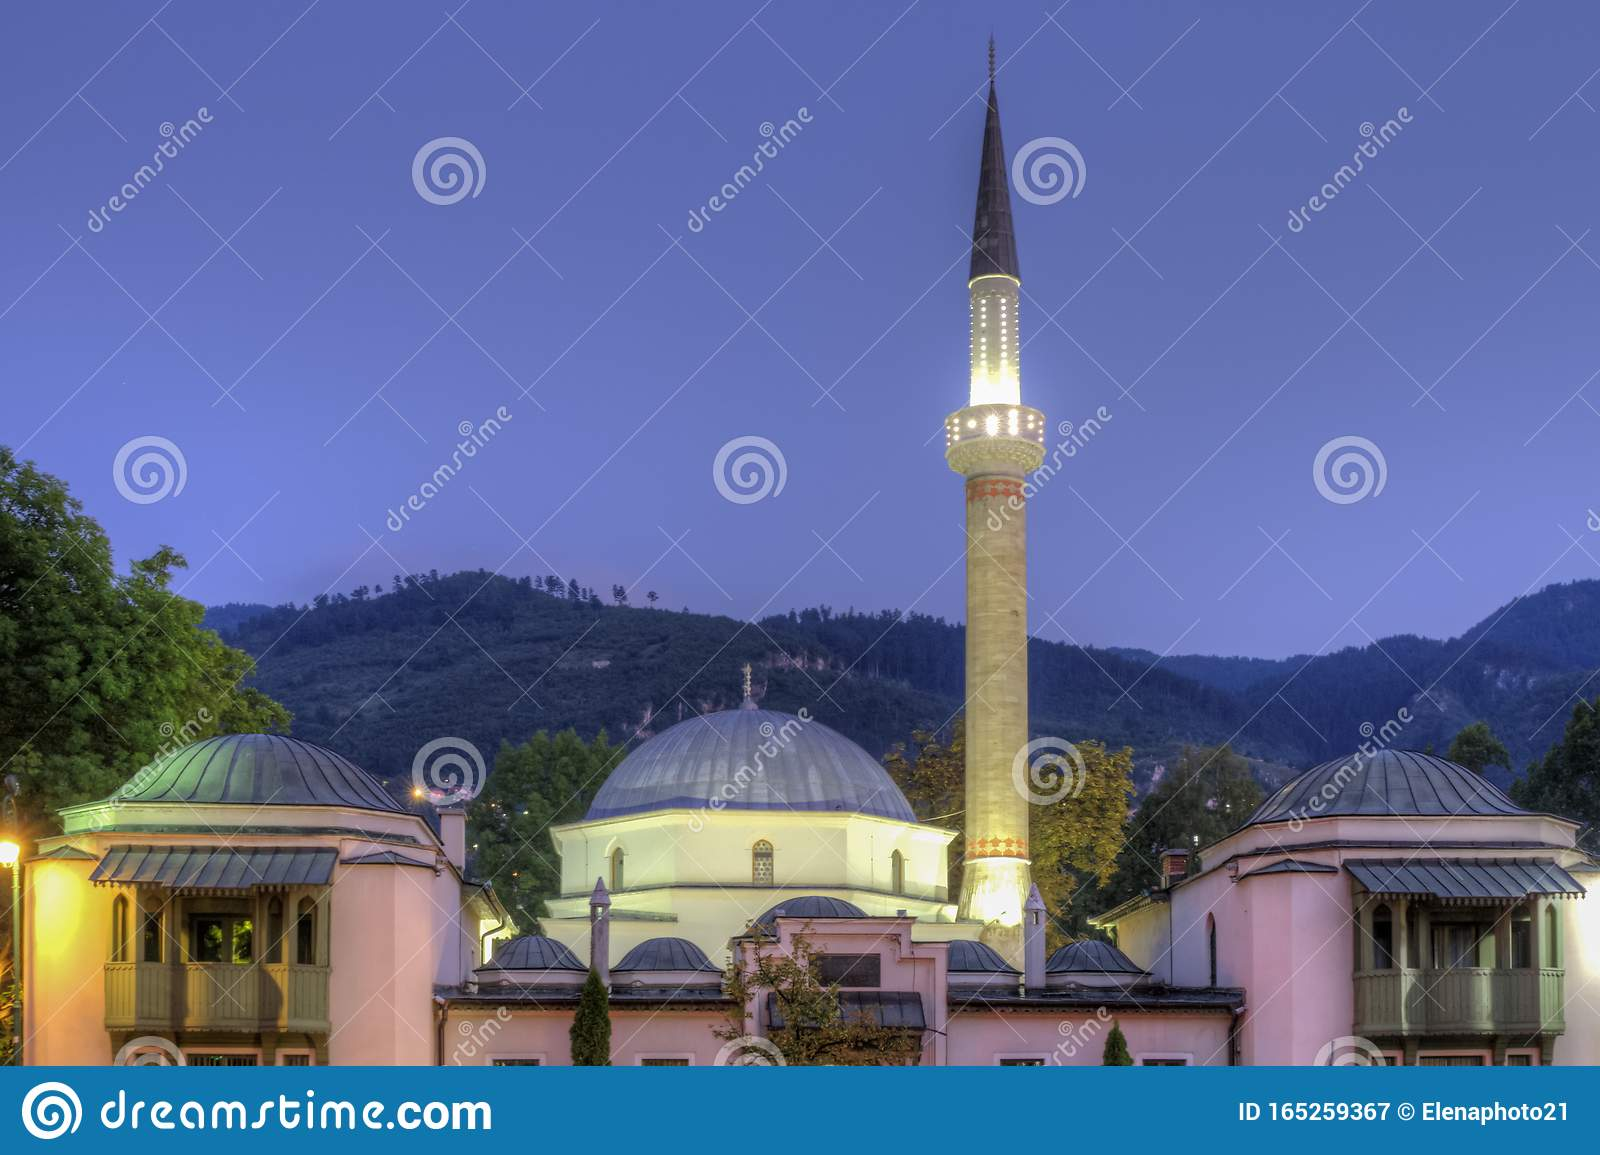 Emperor`s Mosque in Sarajevo on the banks of the Milyacka River, Bosnia and Herzegovina